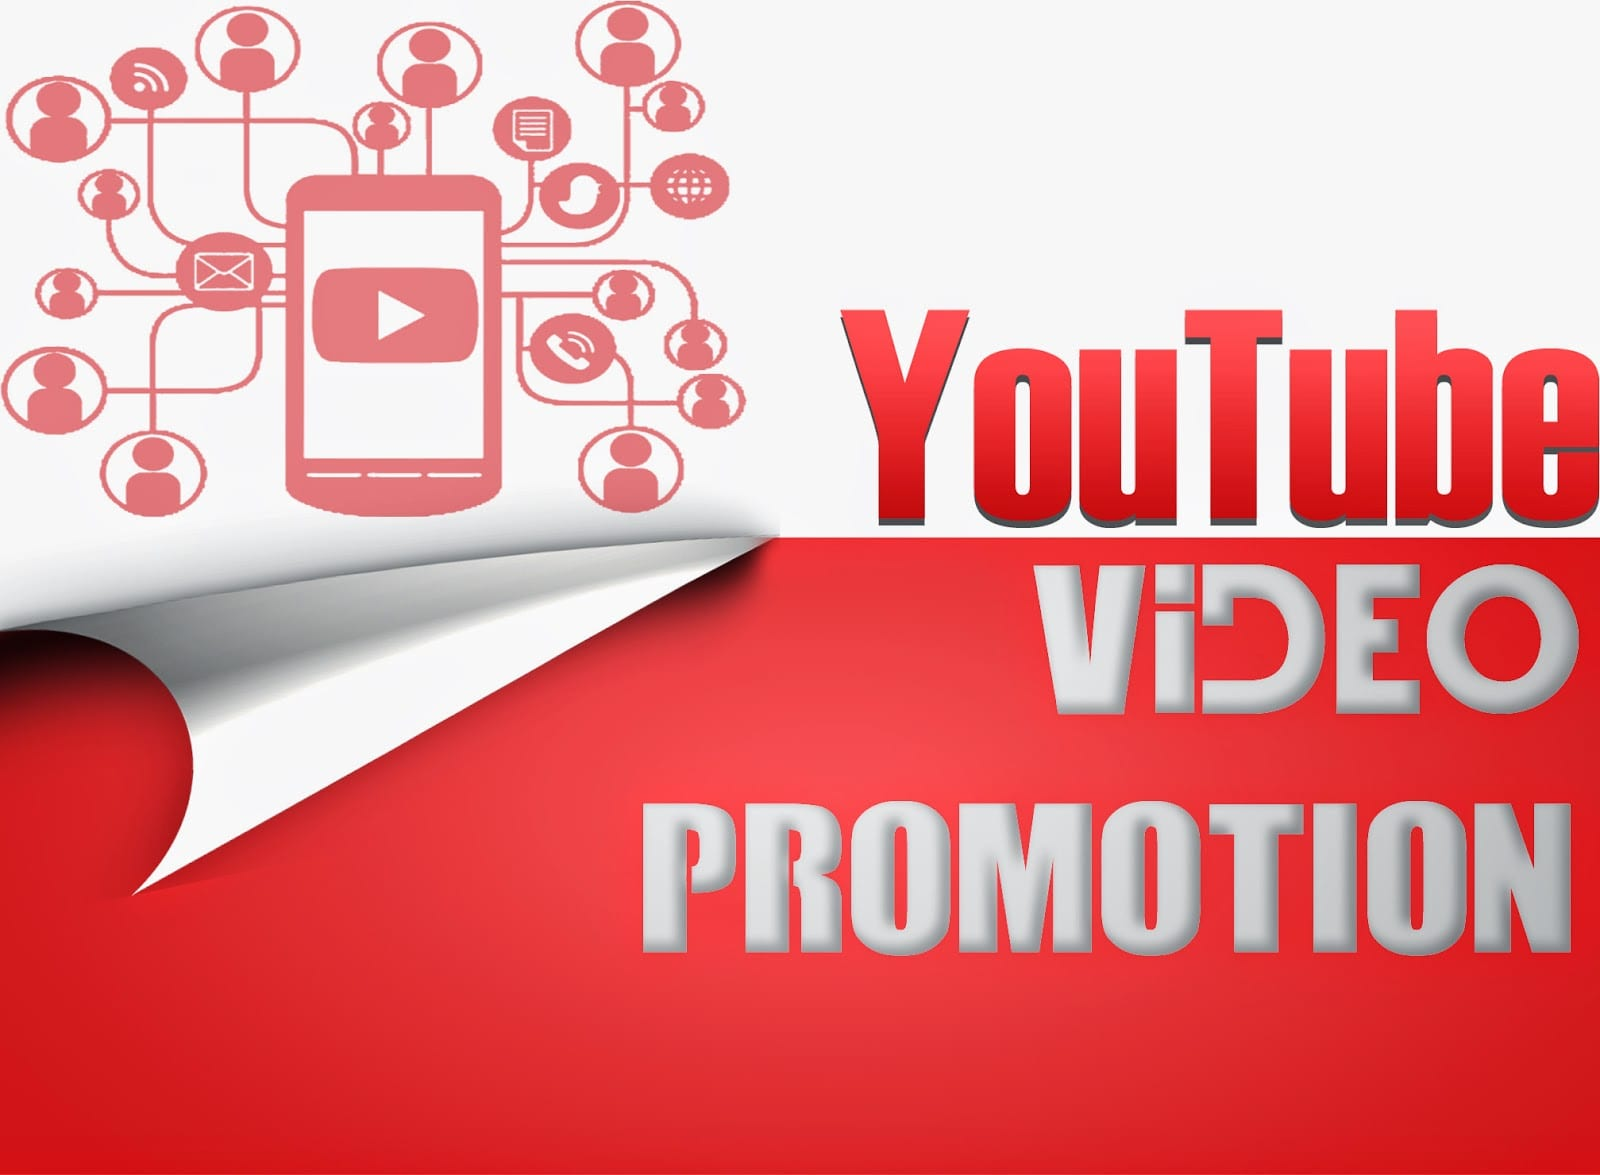 I will provide 500 video promotion with high retention